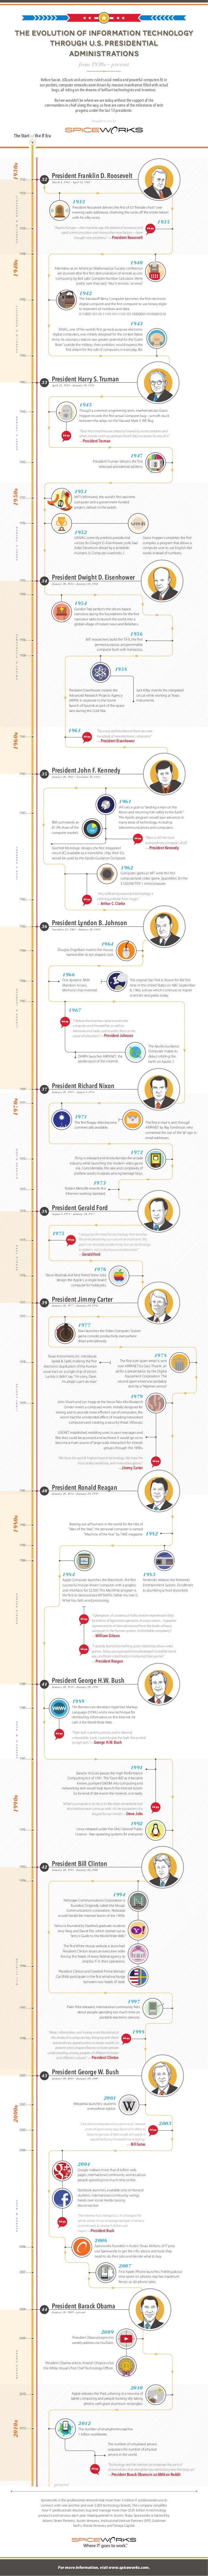 The Evolution of Information Technology Through U.S. Presidential Administrations from 1930s – present Before bacon, LOLca...